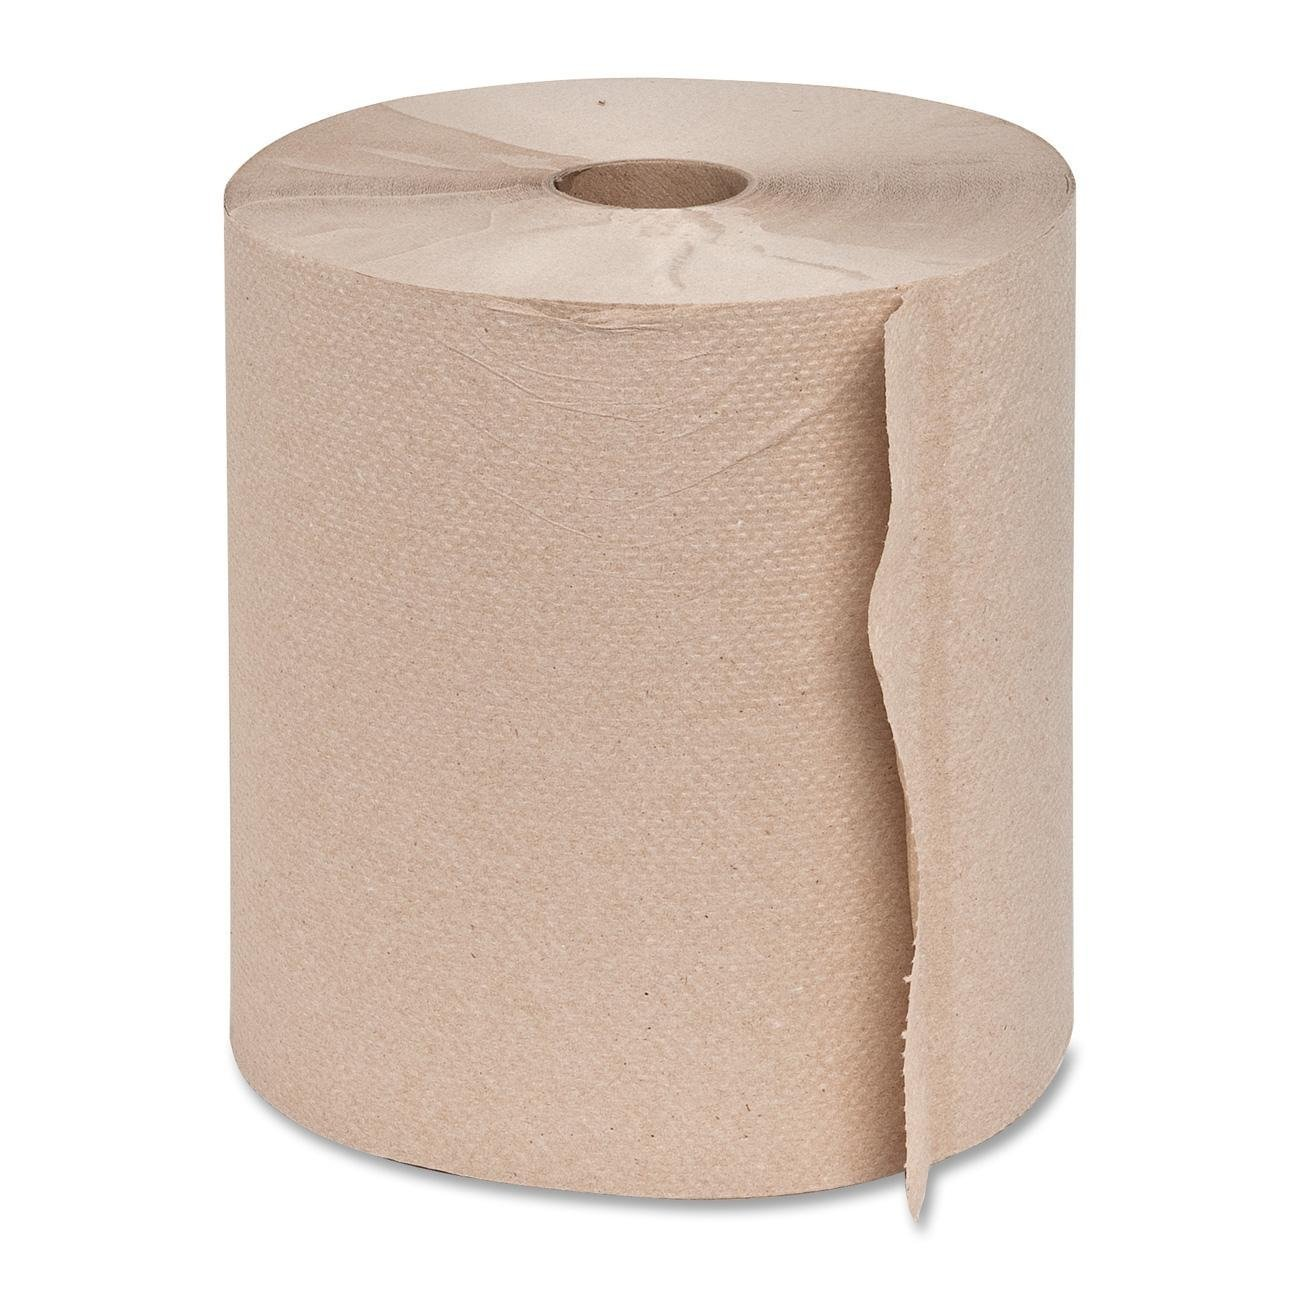 Genuine Joe GJO22600 Hard Wound Roll Towel, 800' Length x 7-8/9'' Width, Natural (Case of 6) (2 CASES)